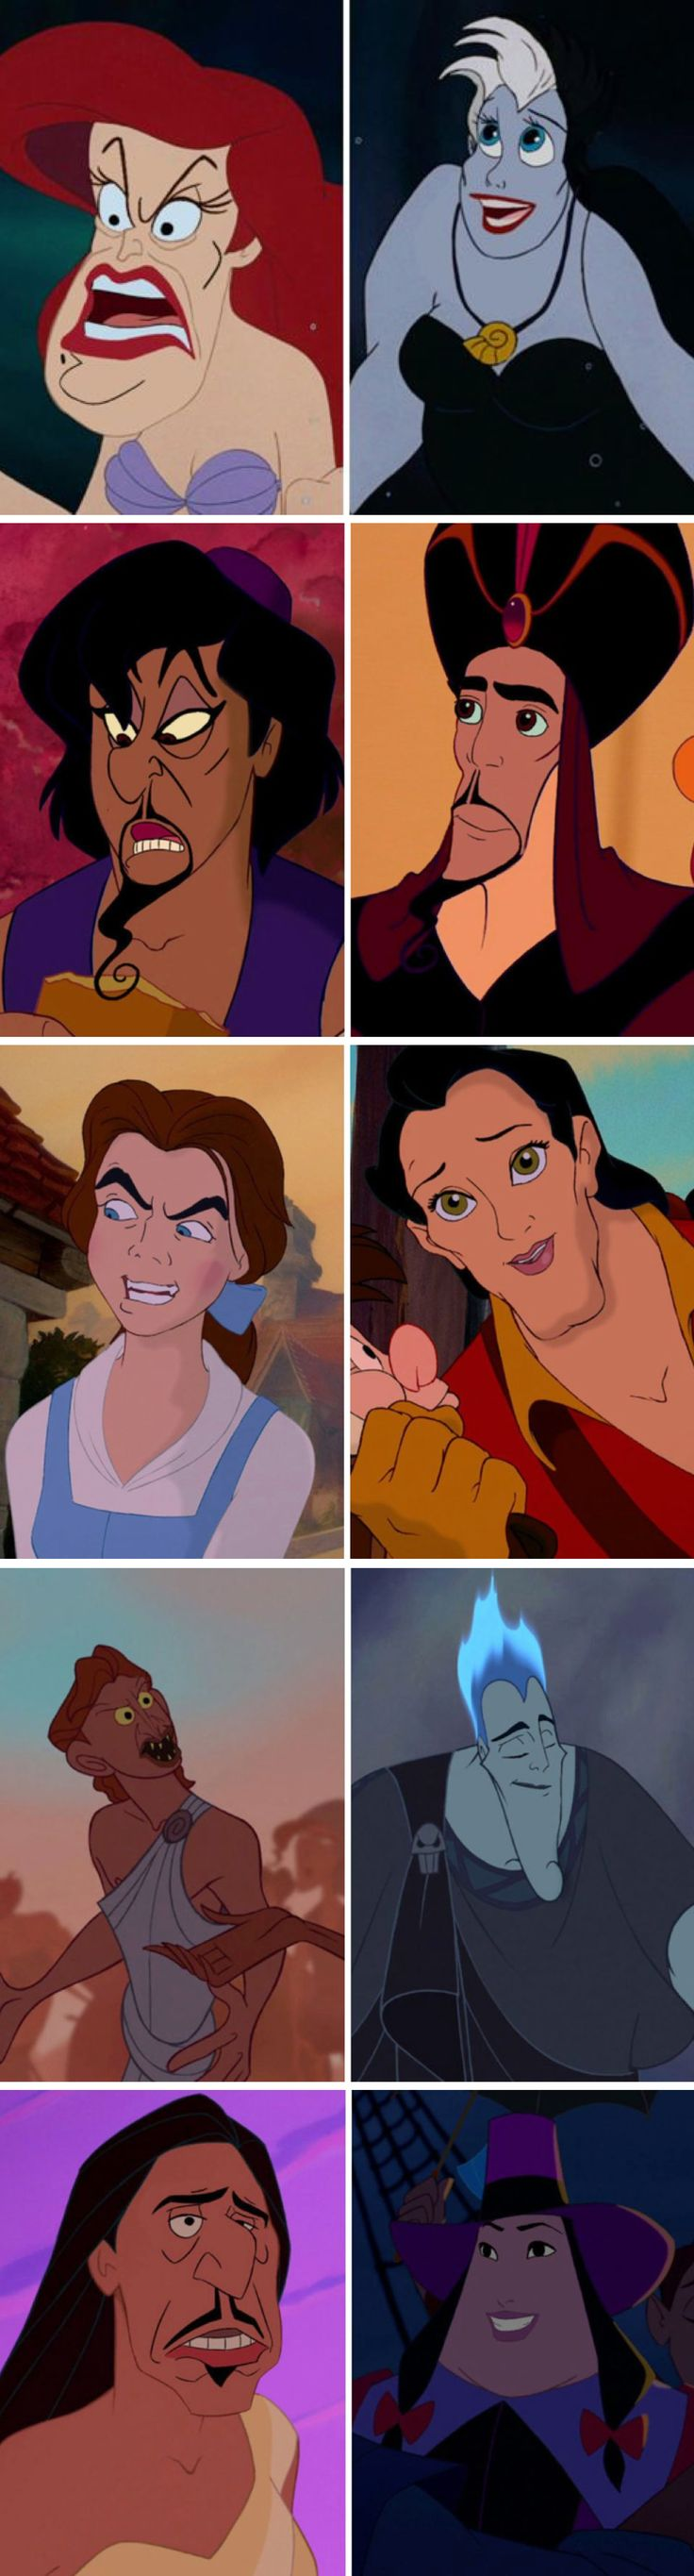 Creepy Disney hero / villain face swap